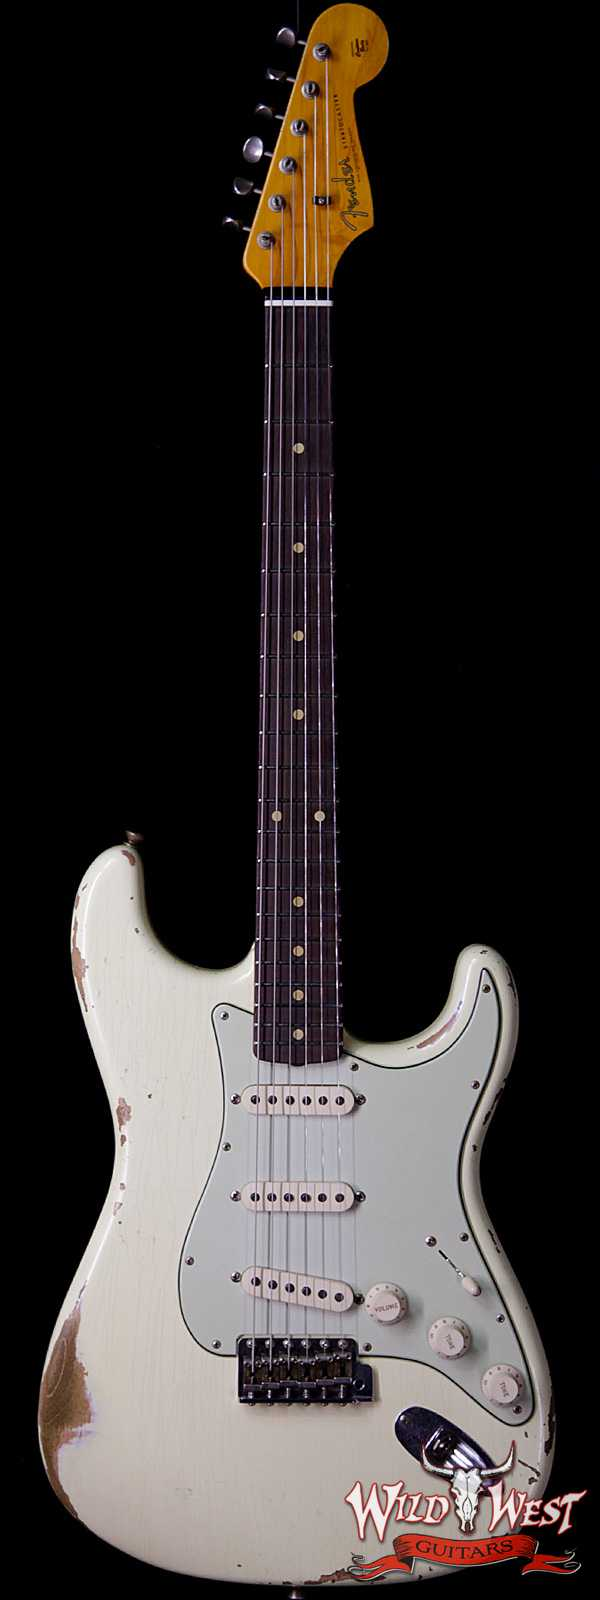 Wild West Guitars - Paul Reed Smith Fender Suhr Ernie Ball